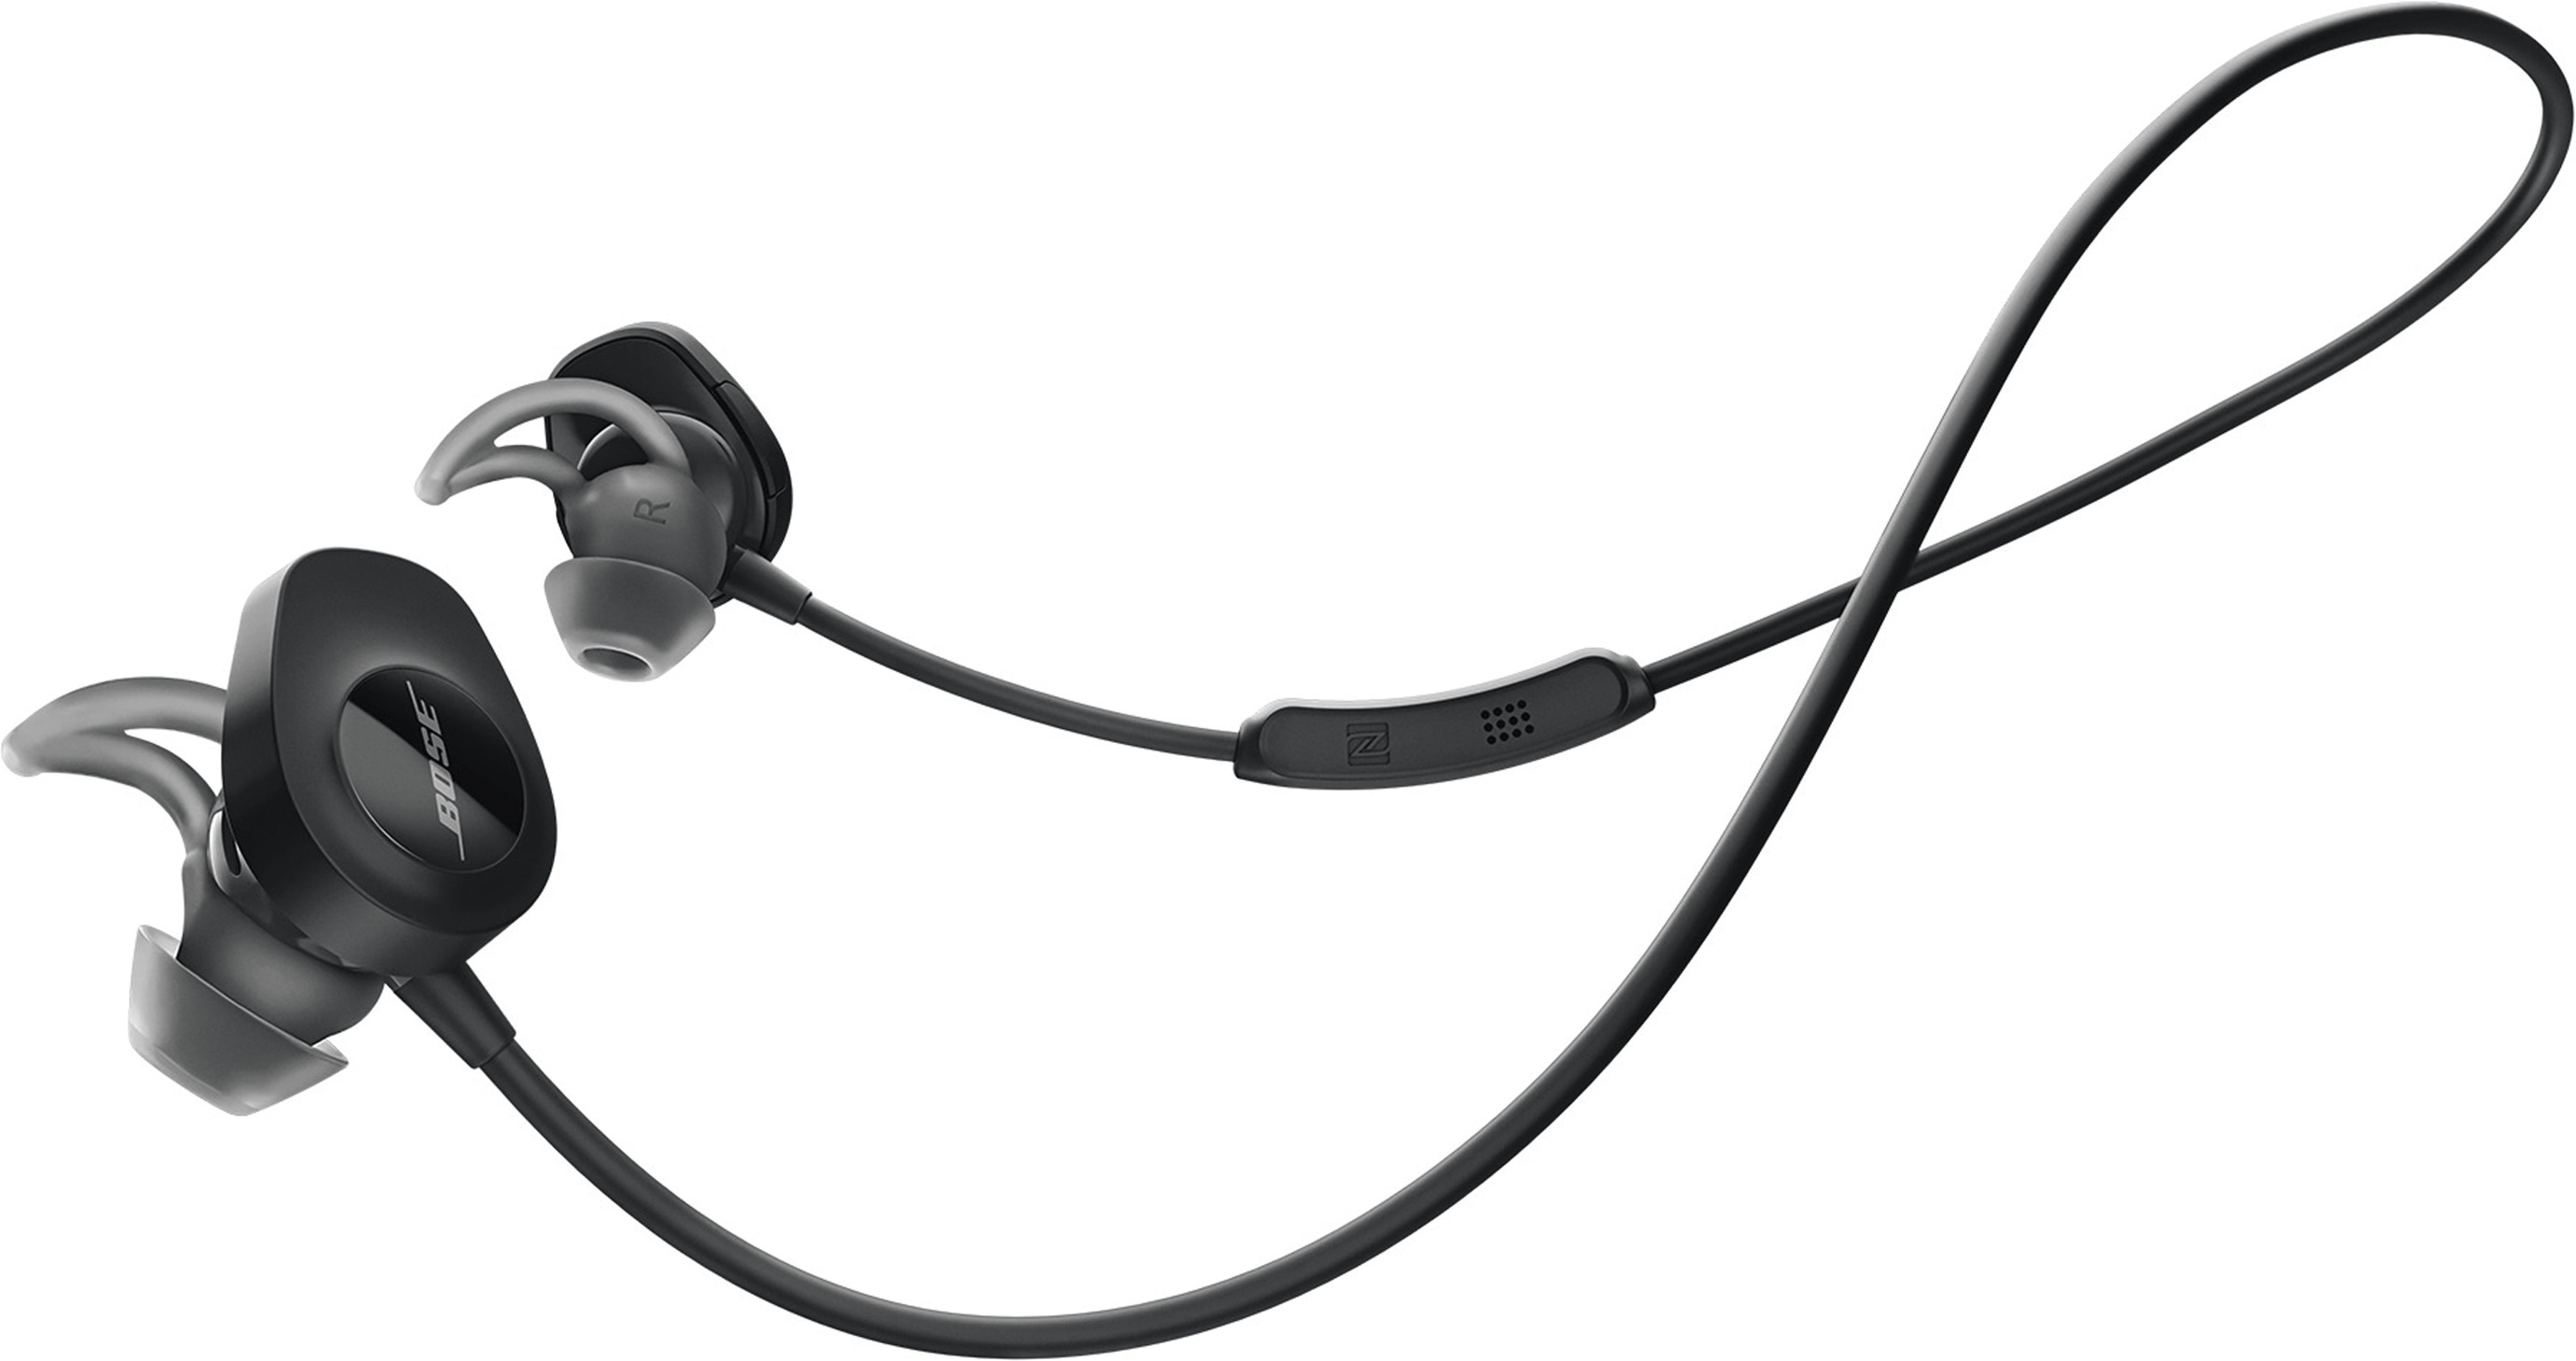 fa35e5e9201 Buy Bose SoundSport Wireless Headphones - Microsoft Store